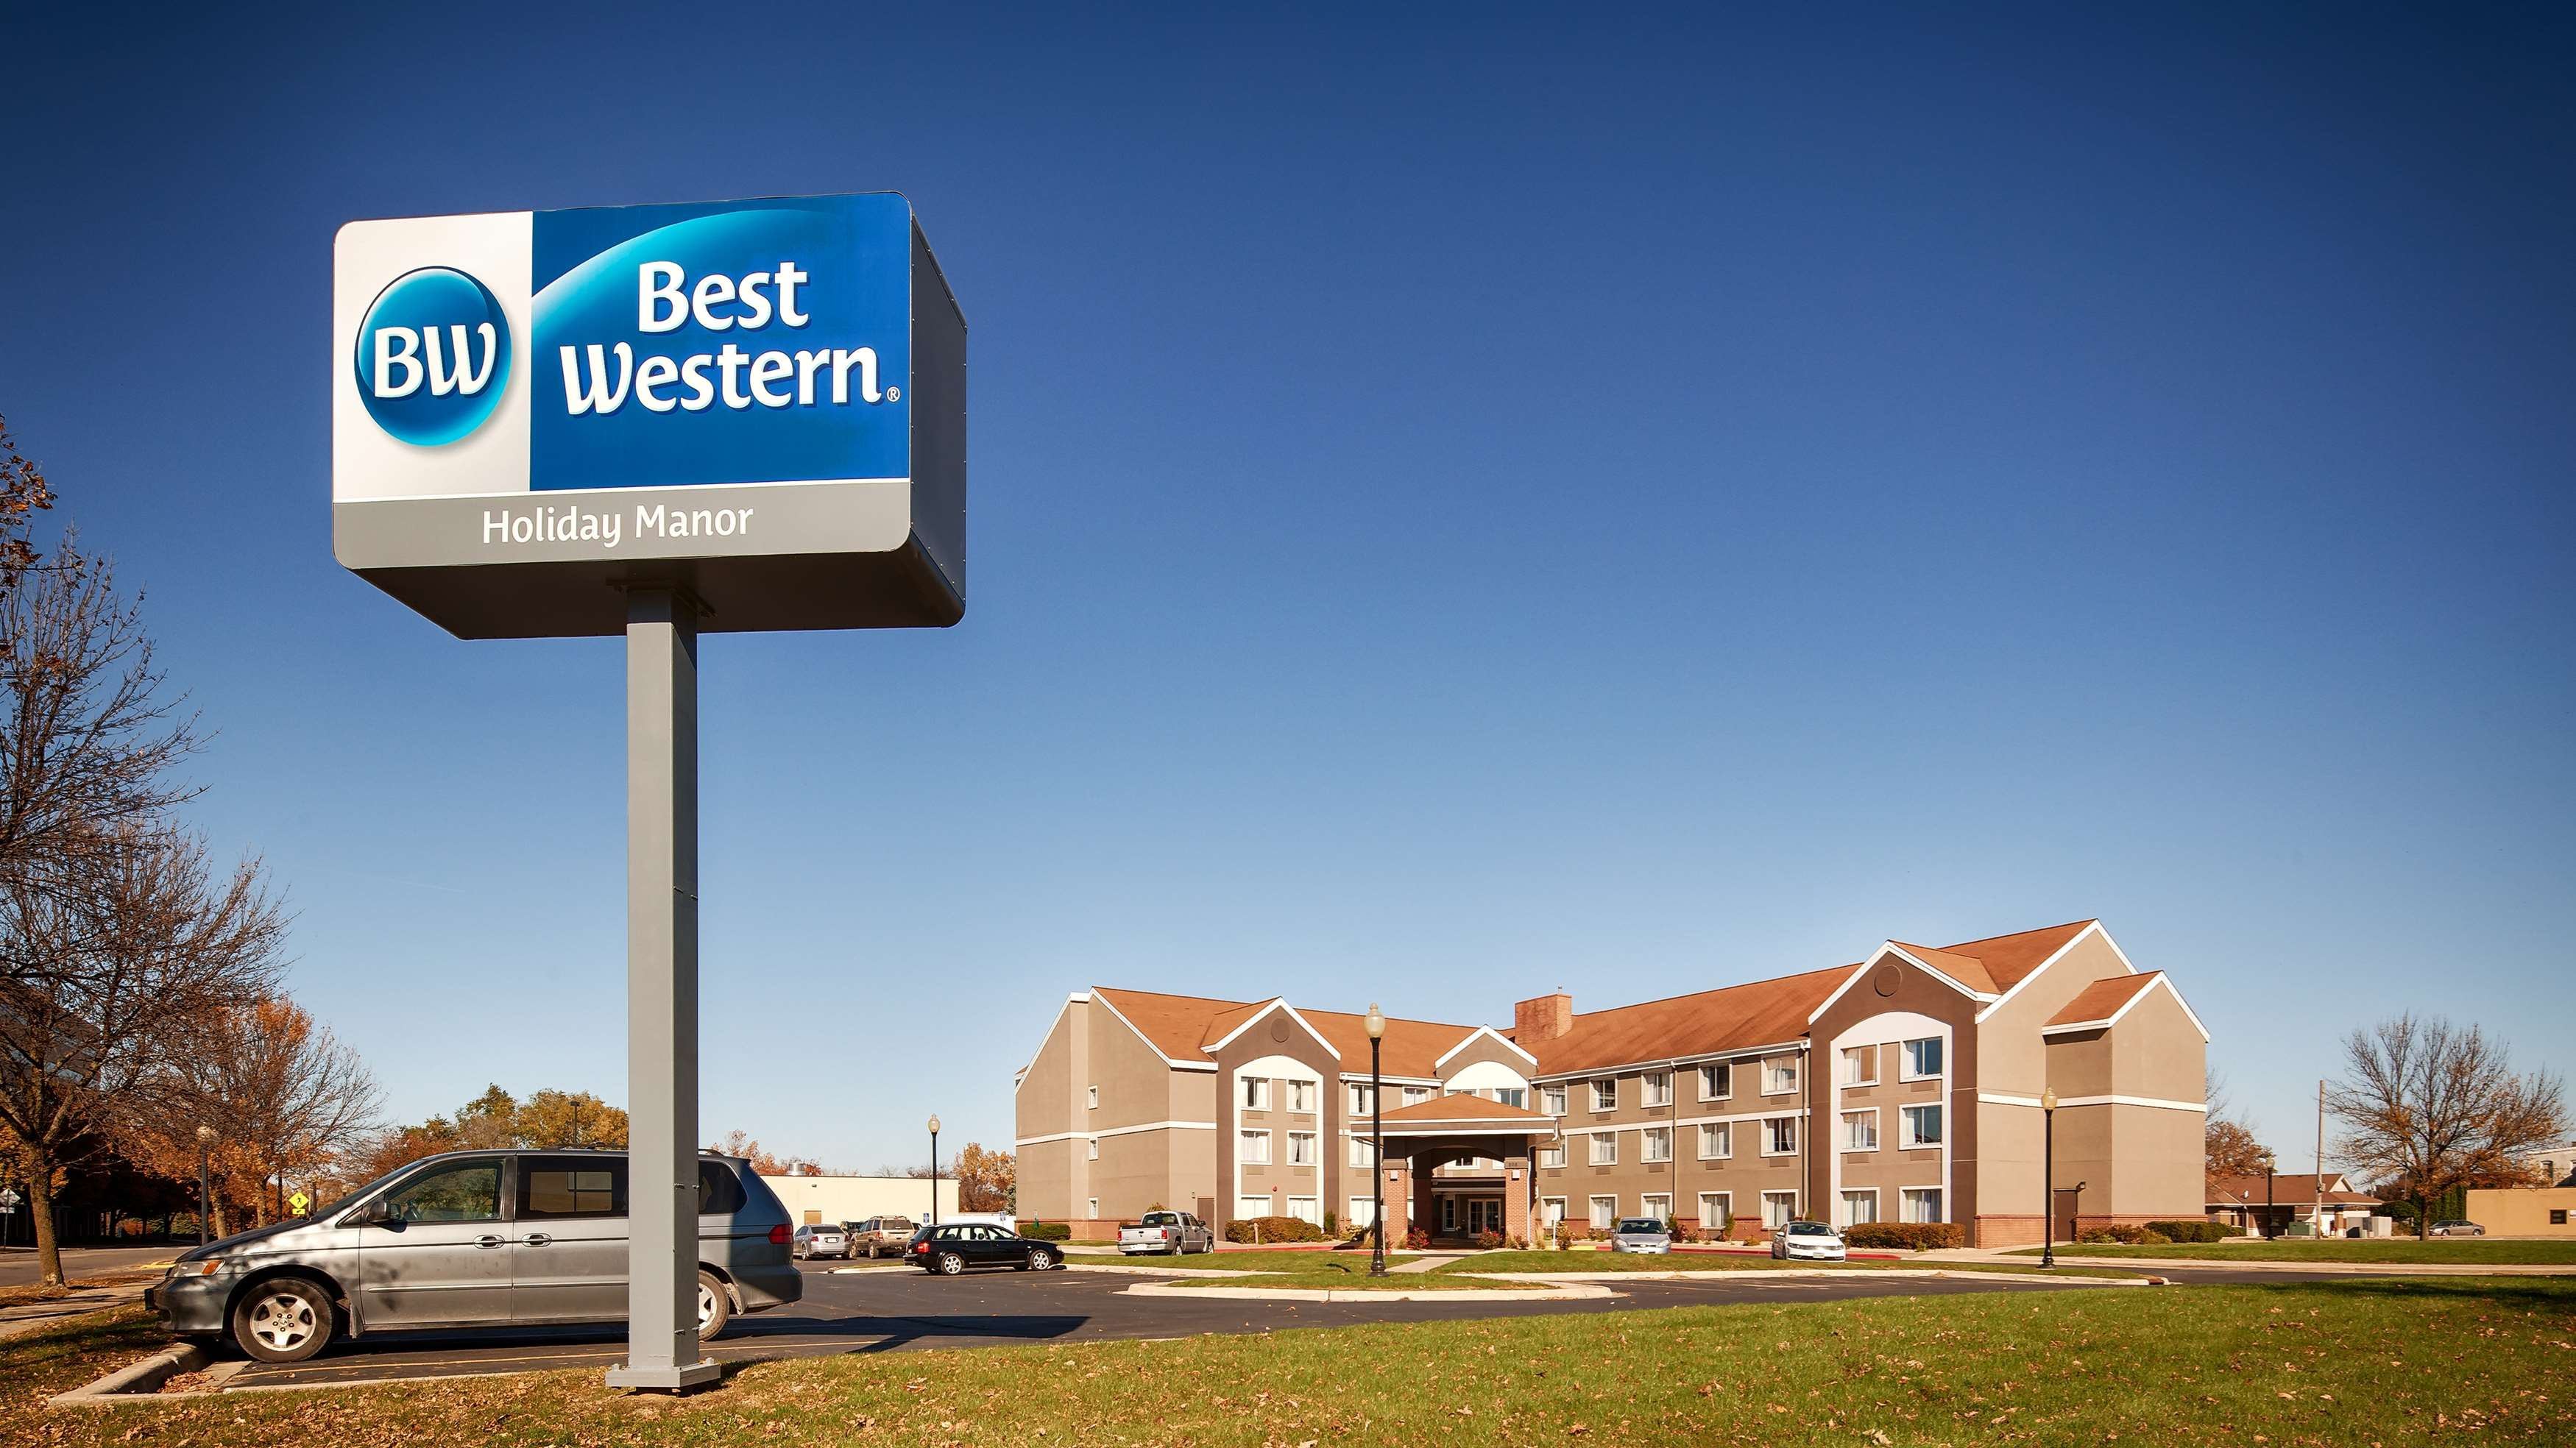 Best Western Holiday Manor image 2